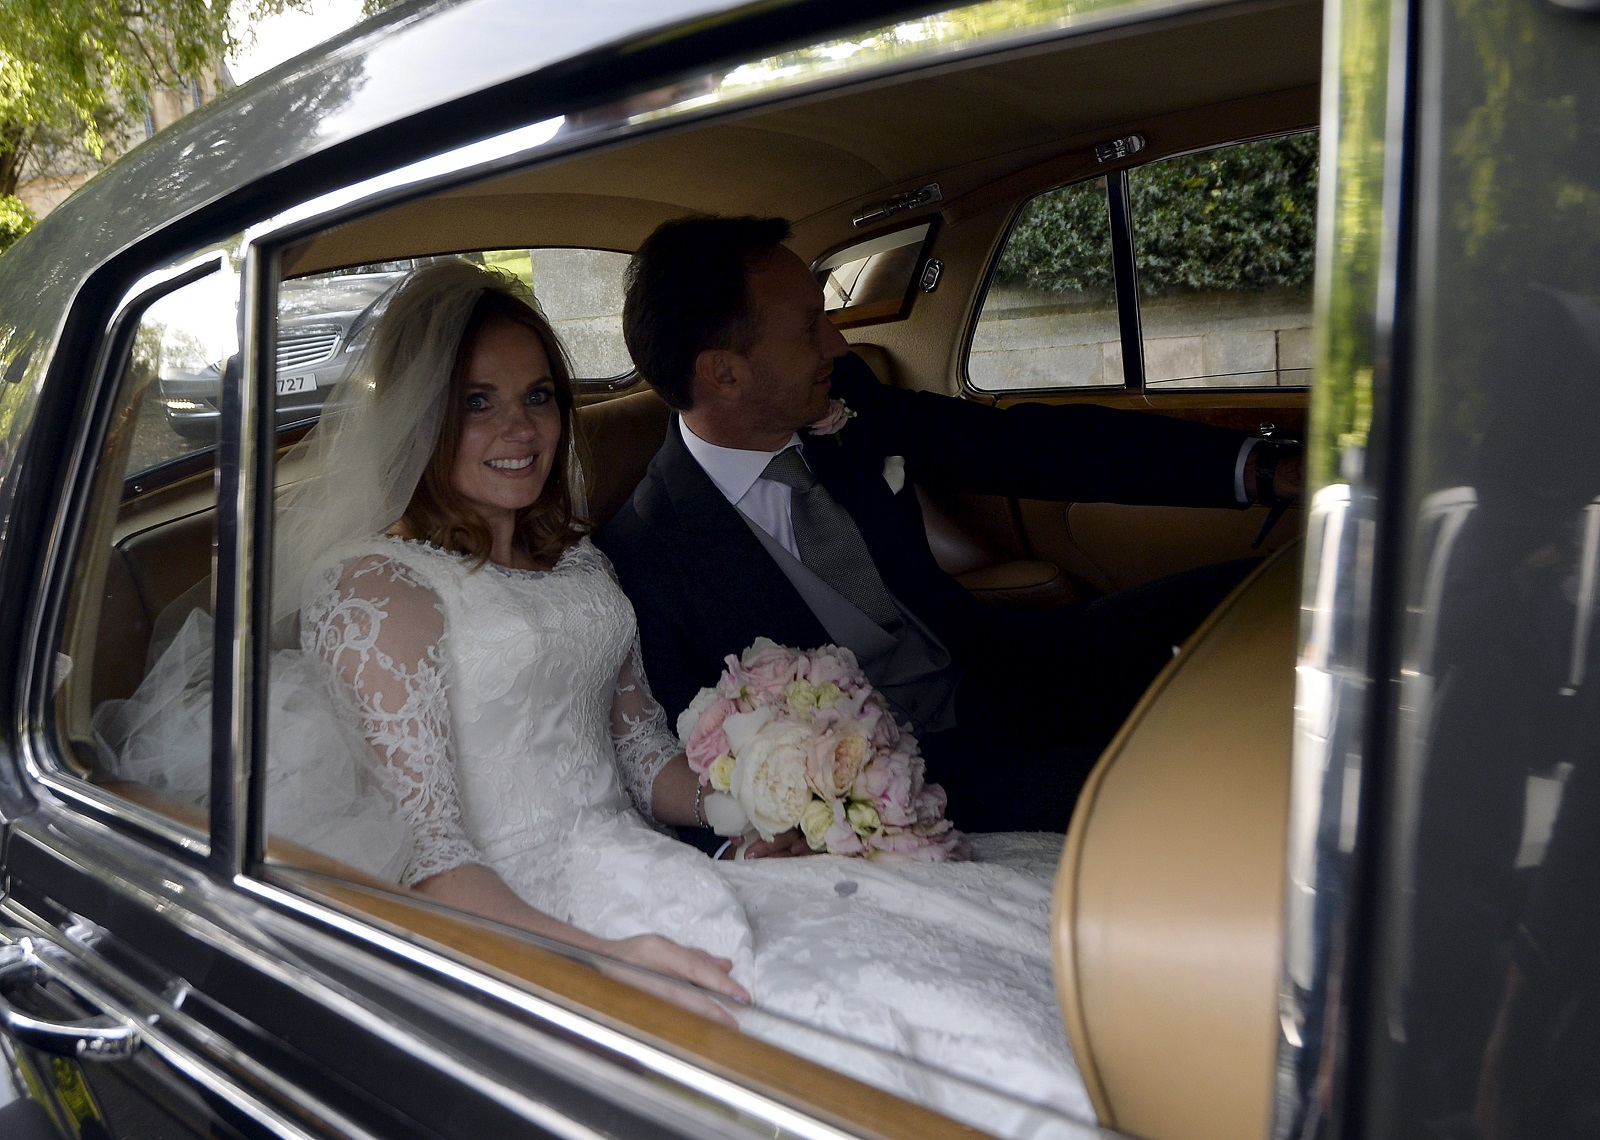 Geri Halliwell gets married to Christian Horner